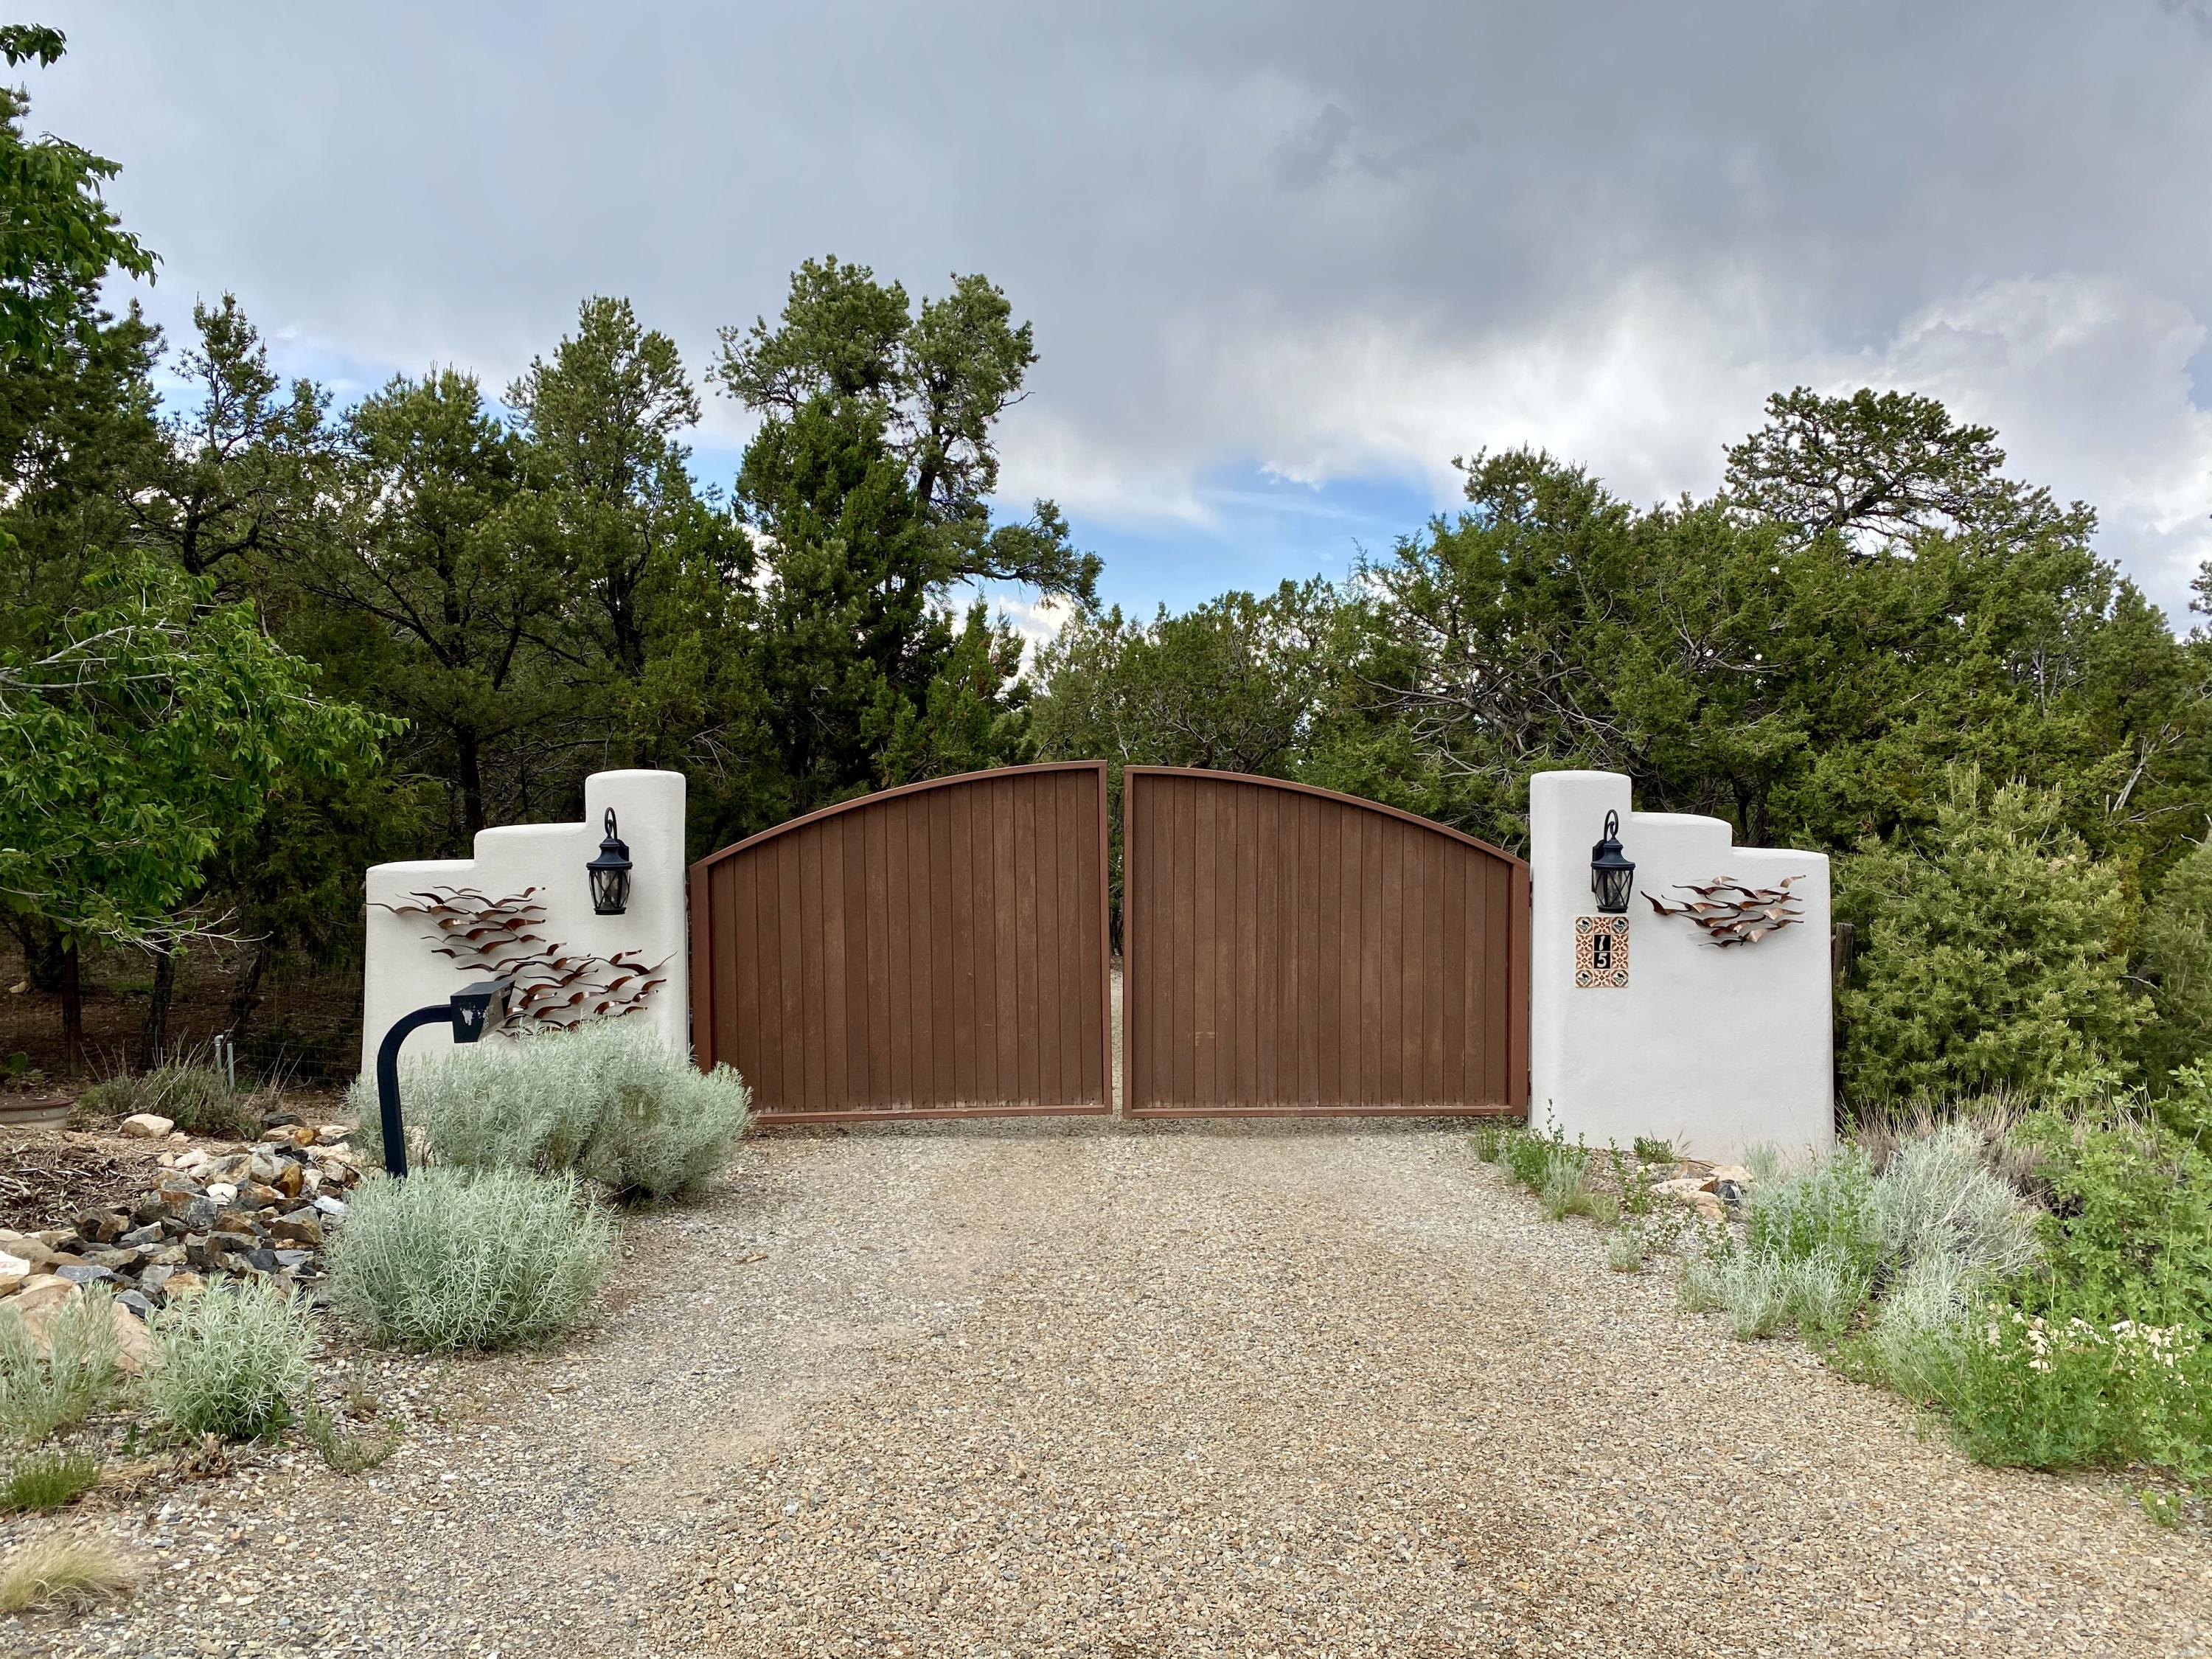 Private gate leads to 1.5 fully fenced acres. Through the trees you'll see the beautiful hacienda w it's Gated Courtyard. Nestled on a premier view lot that backs up to open space this home is poised to capture mountain vistas & big blue NM skies! Upon first entry you're greeted with high ceilings treated w T&G, Beams, Vigas, Corbels, Nichos & Cedar planks. Living & dining rooms each have walls of french door windows under covered patios-perfect for entertaining. Remodeled open kitchen w KitchenAid professional appliances + plenty of cabinets & counter space. Master wing w Study, Kiva FP, beamed ceiling + ensuite bath w jet tub, sep shower, 9' vanity w 2 sinks. East wing w 2 bedrooms  (one w private entry) & den all have beamed ceiling accents. Award winning BY landscape design is perfect!